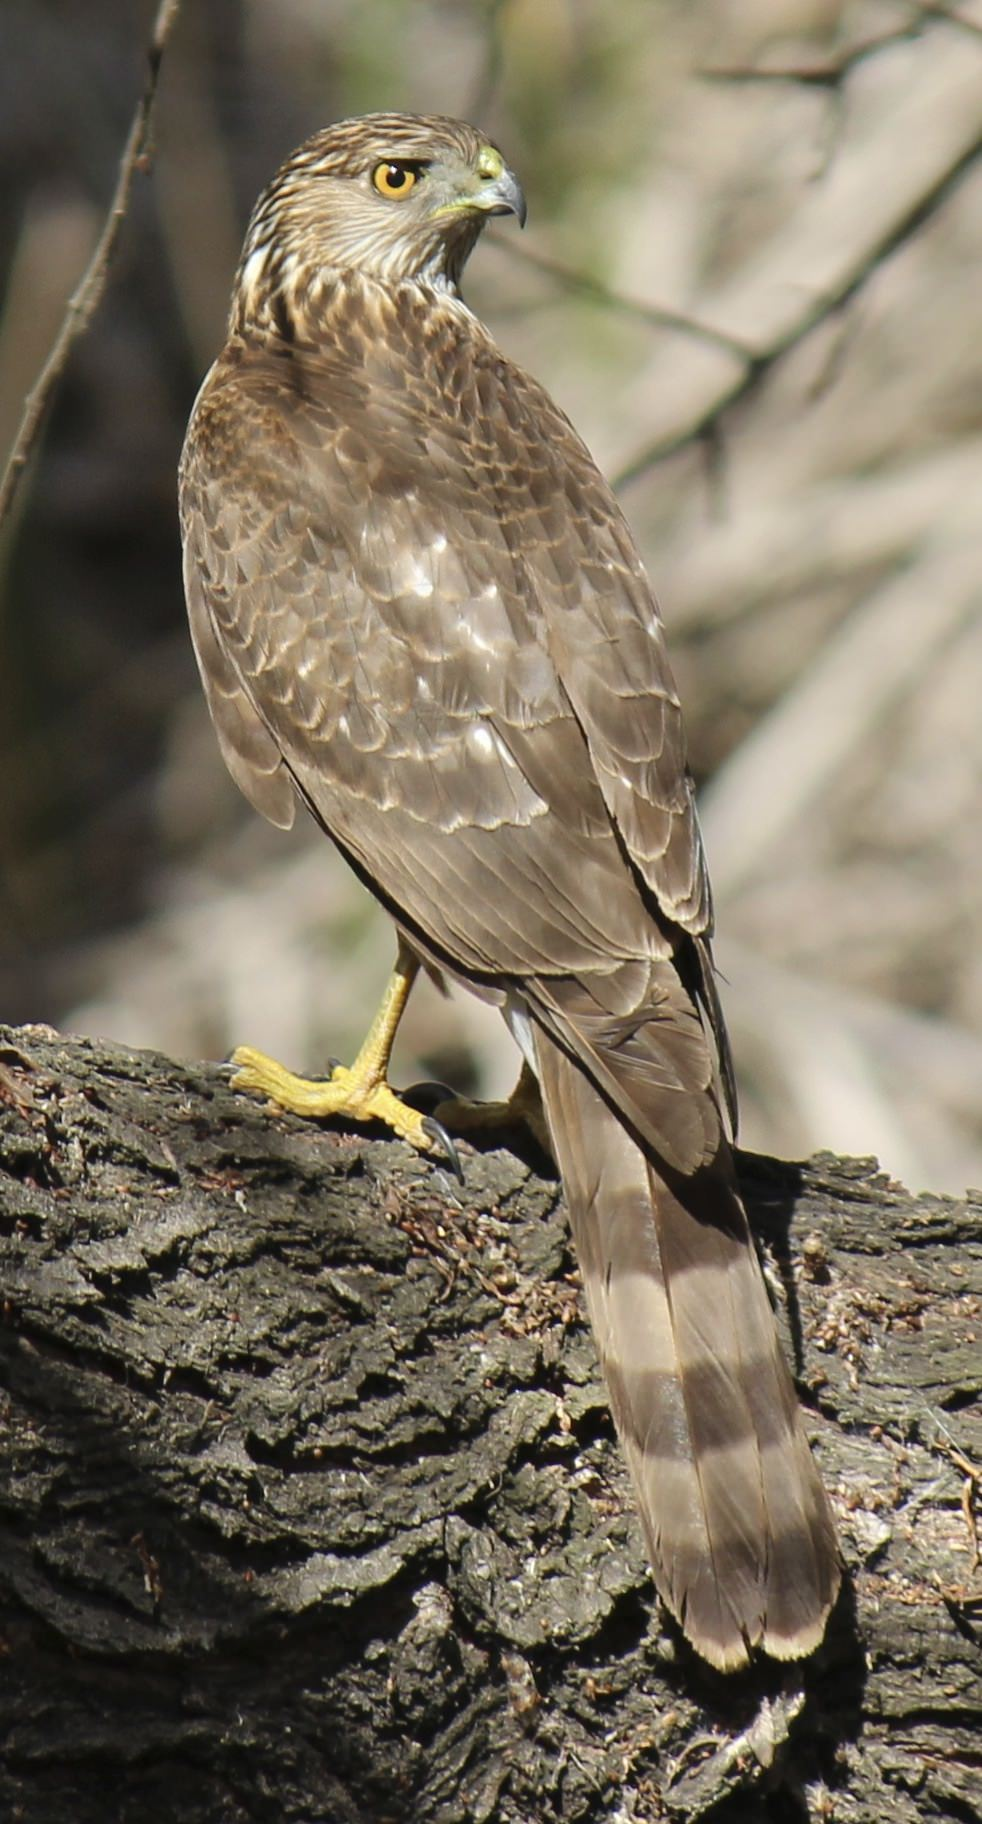 Juvenile Cooper's Hawk. Photo by Katie Sweeney.